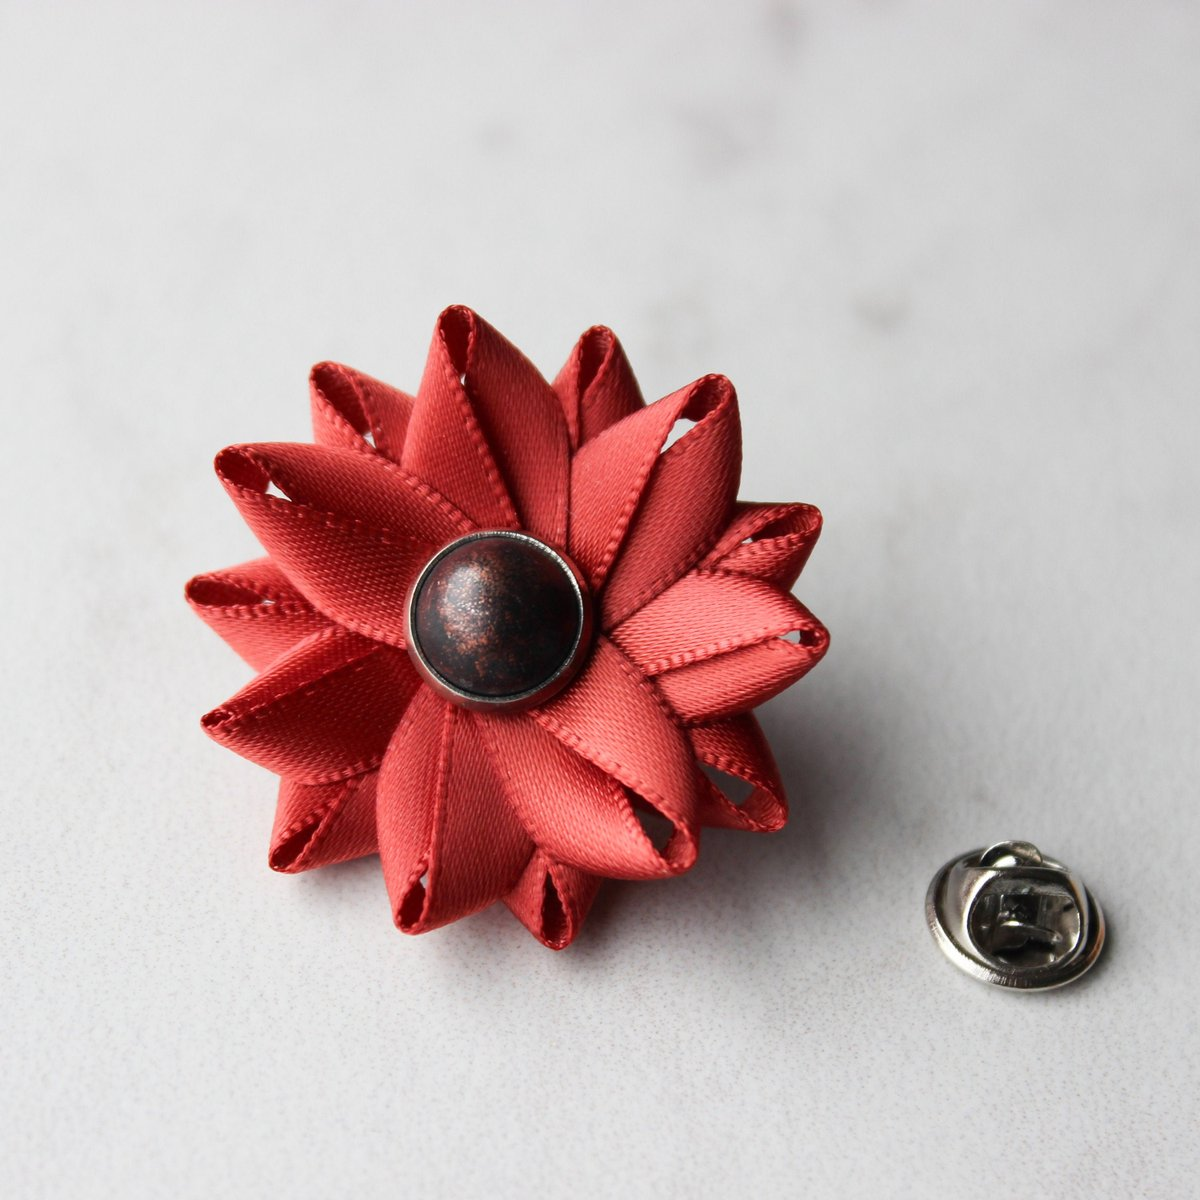 Unique Gift for Him, Gift for Men, Gift for Boyfriend, Rust Colored Lapel Flower Pin, Mens Boutonniere, Gift for Father, Gift for Dad  #etsyshop #etsy #shopsmall #sale #shop #shopping #store